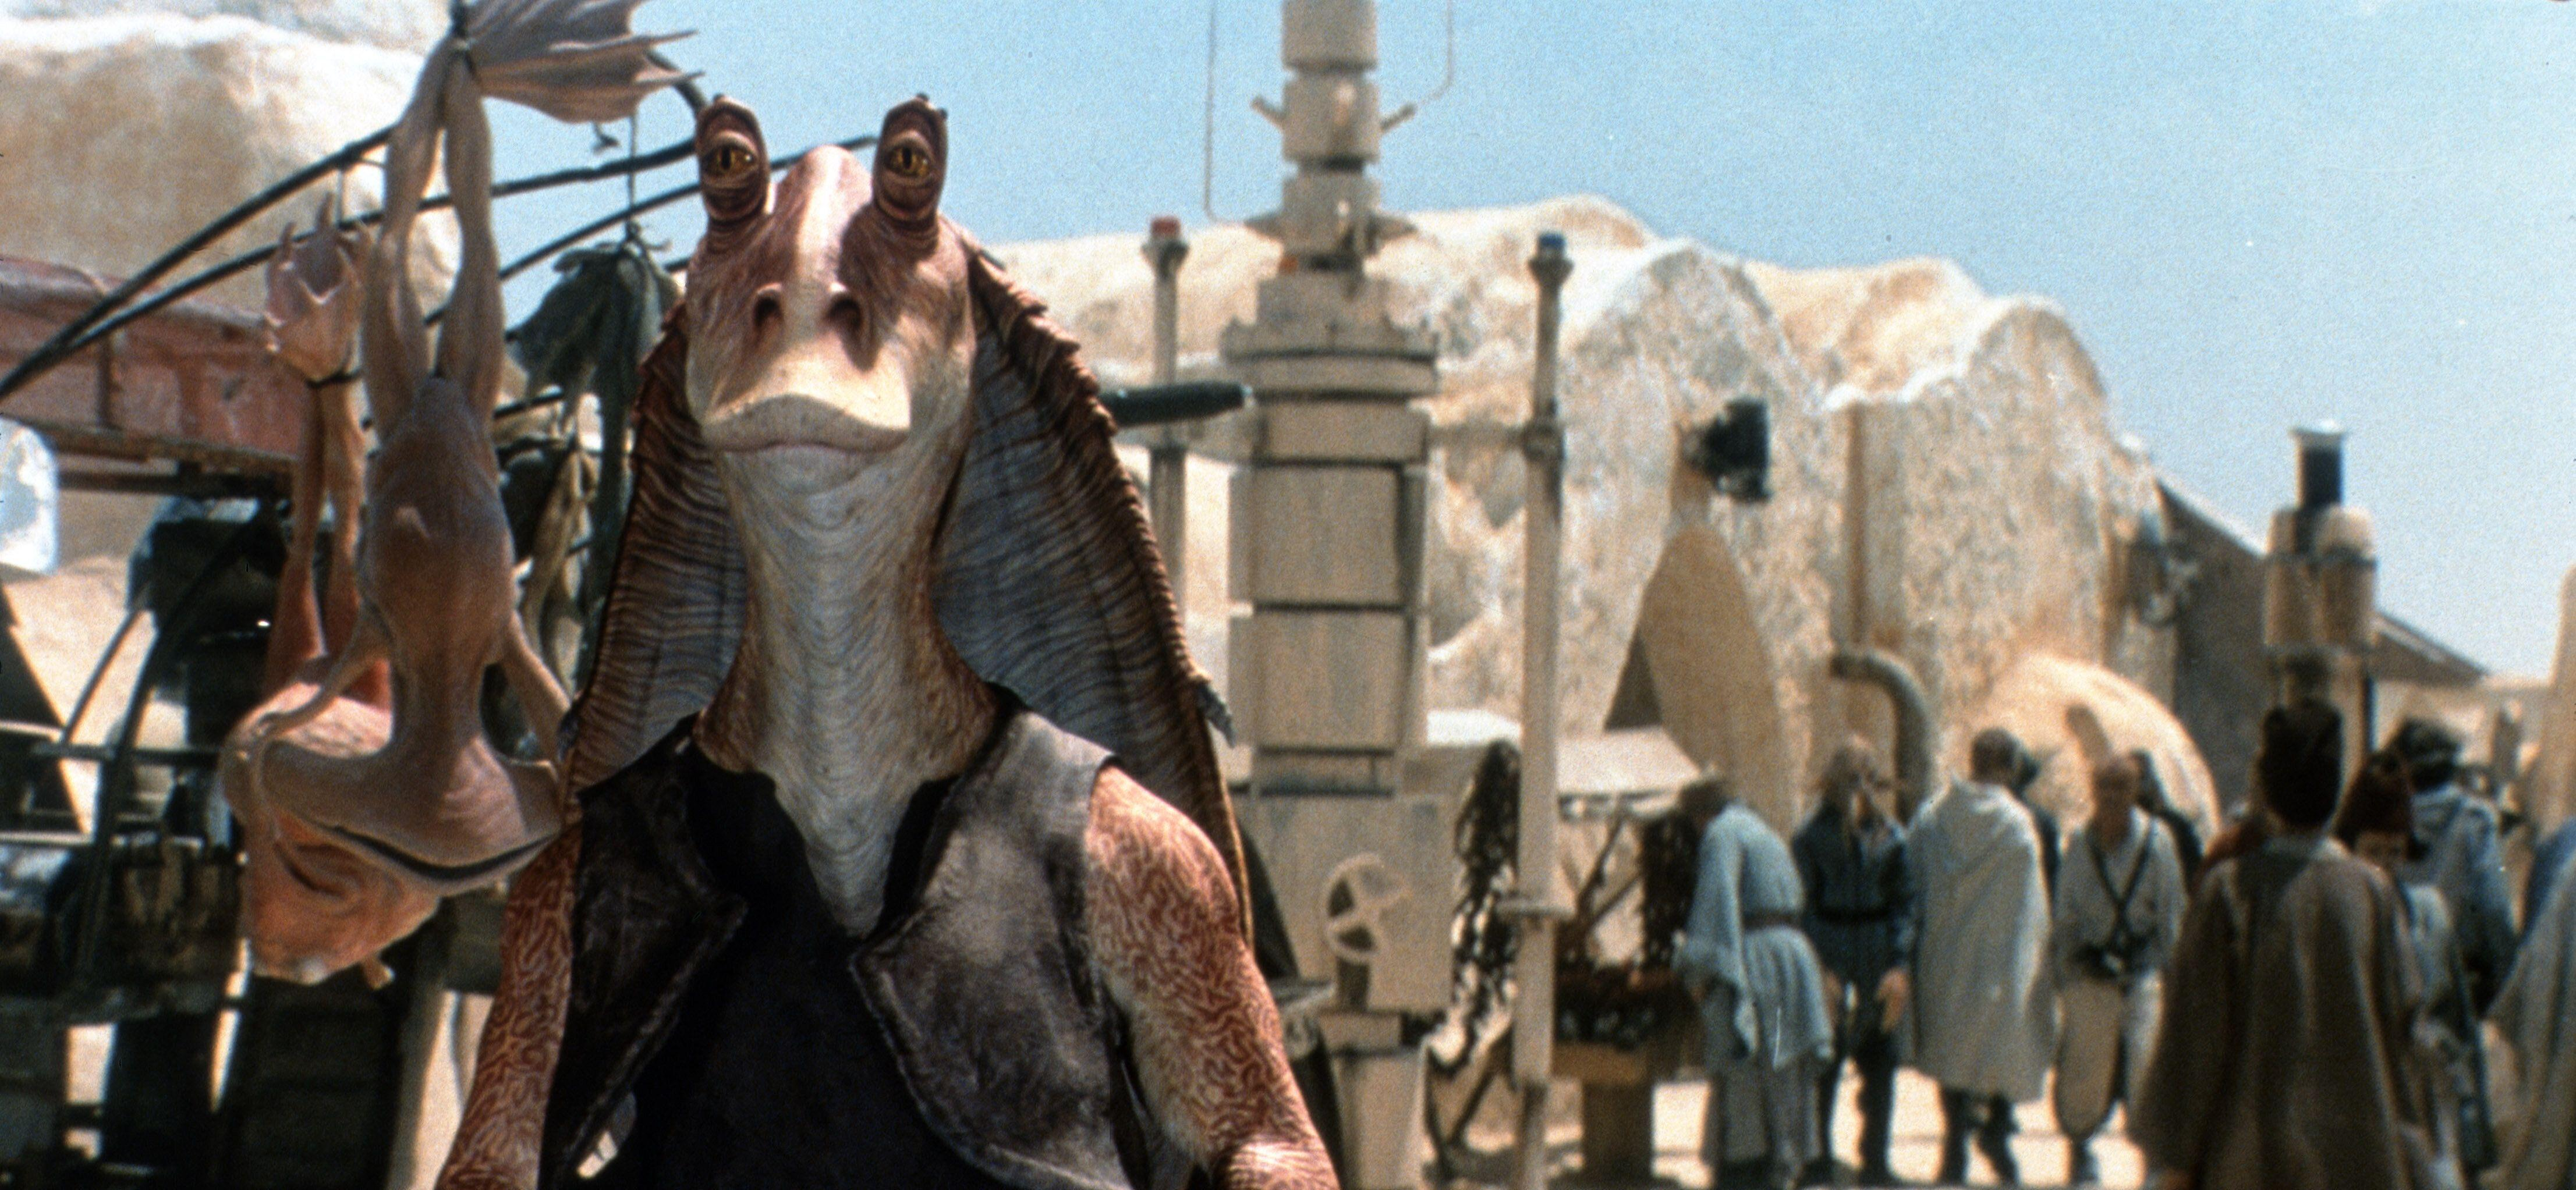 Jar-Jar Binks emerged as the target of fan ire after the release of 'The Phantom Menace' in 1999 (Photo: Lucasfilm Ltd./courtesy Everett / Everett Collection)